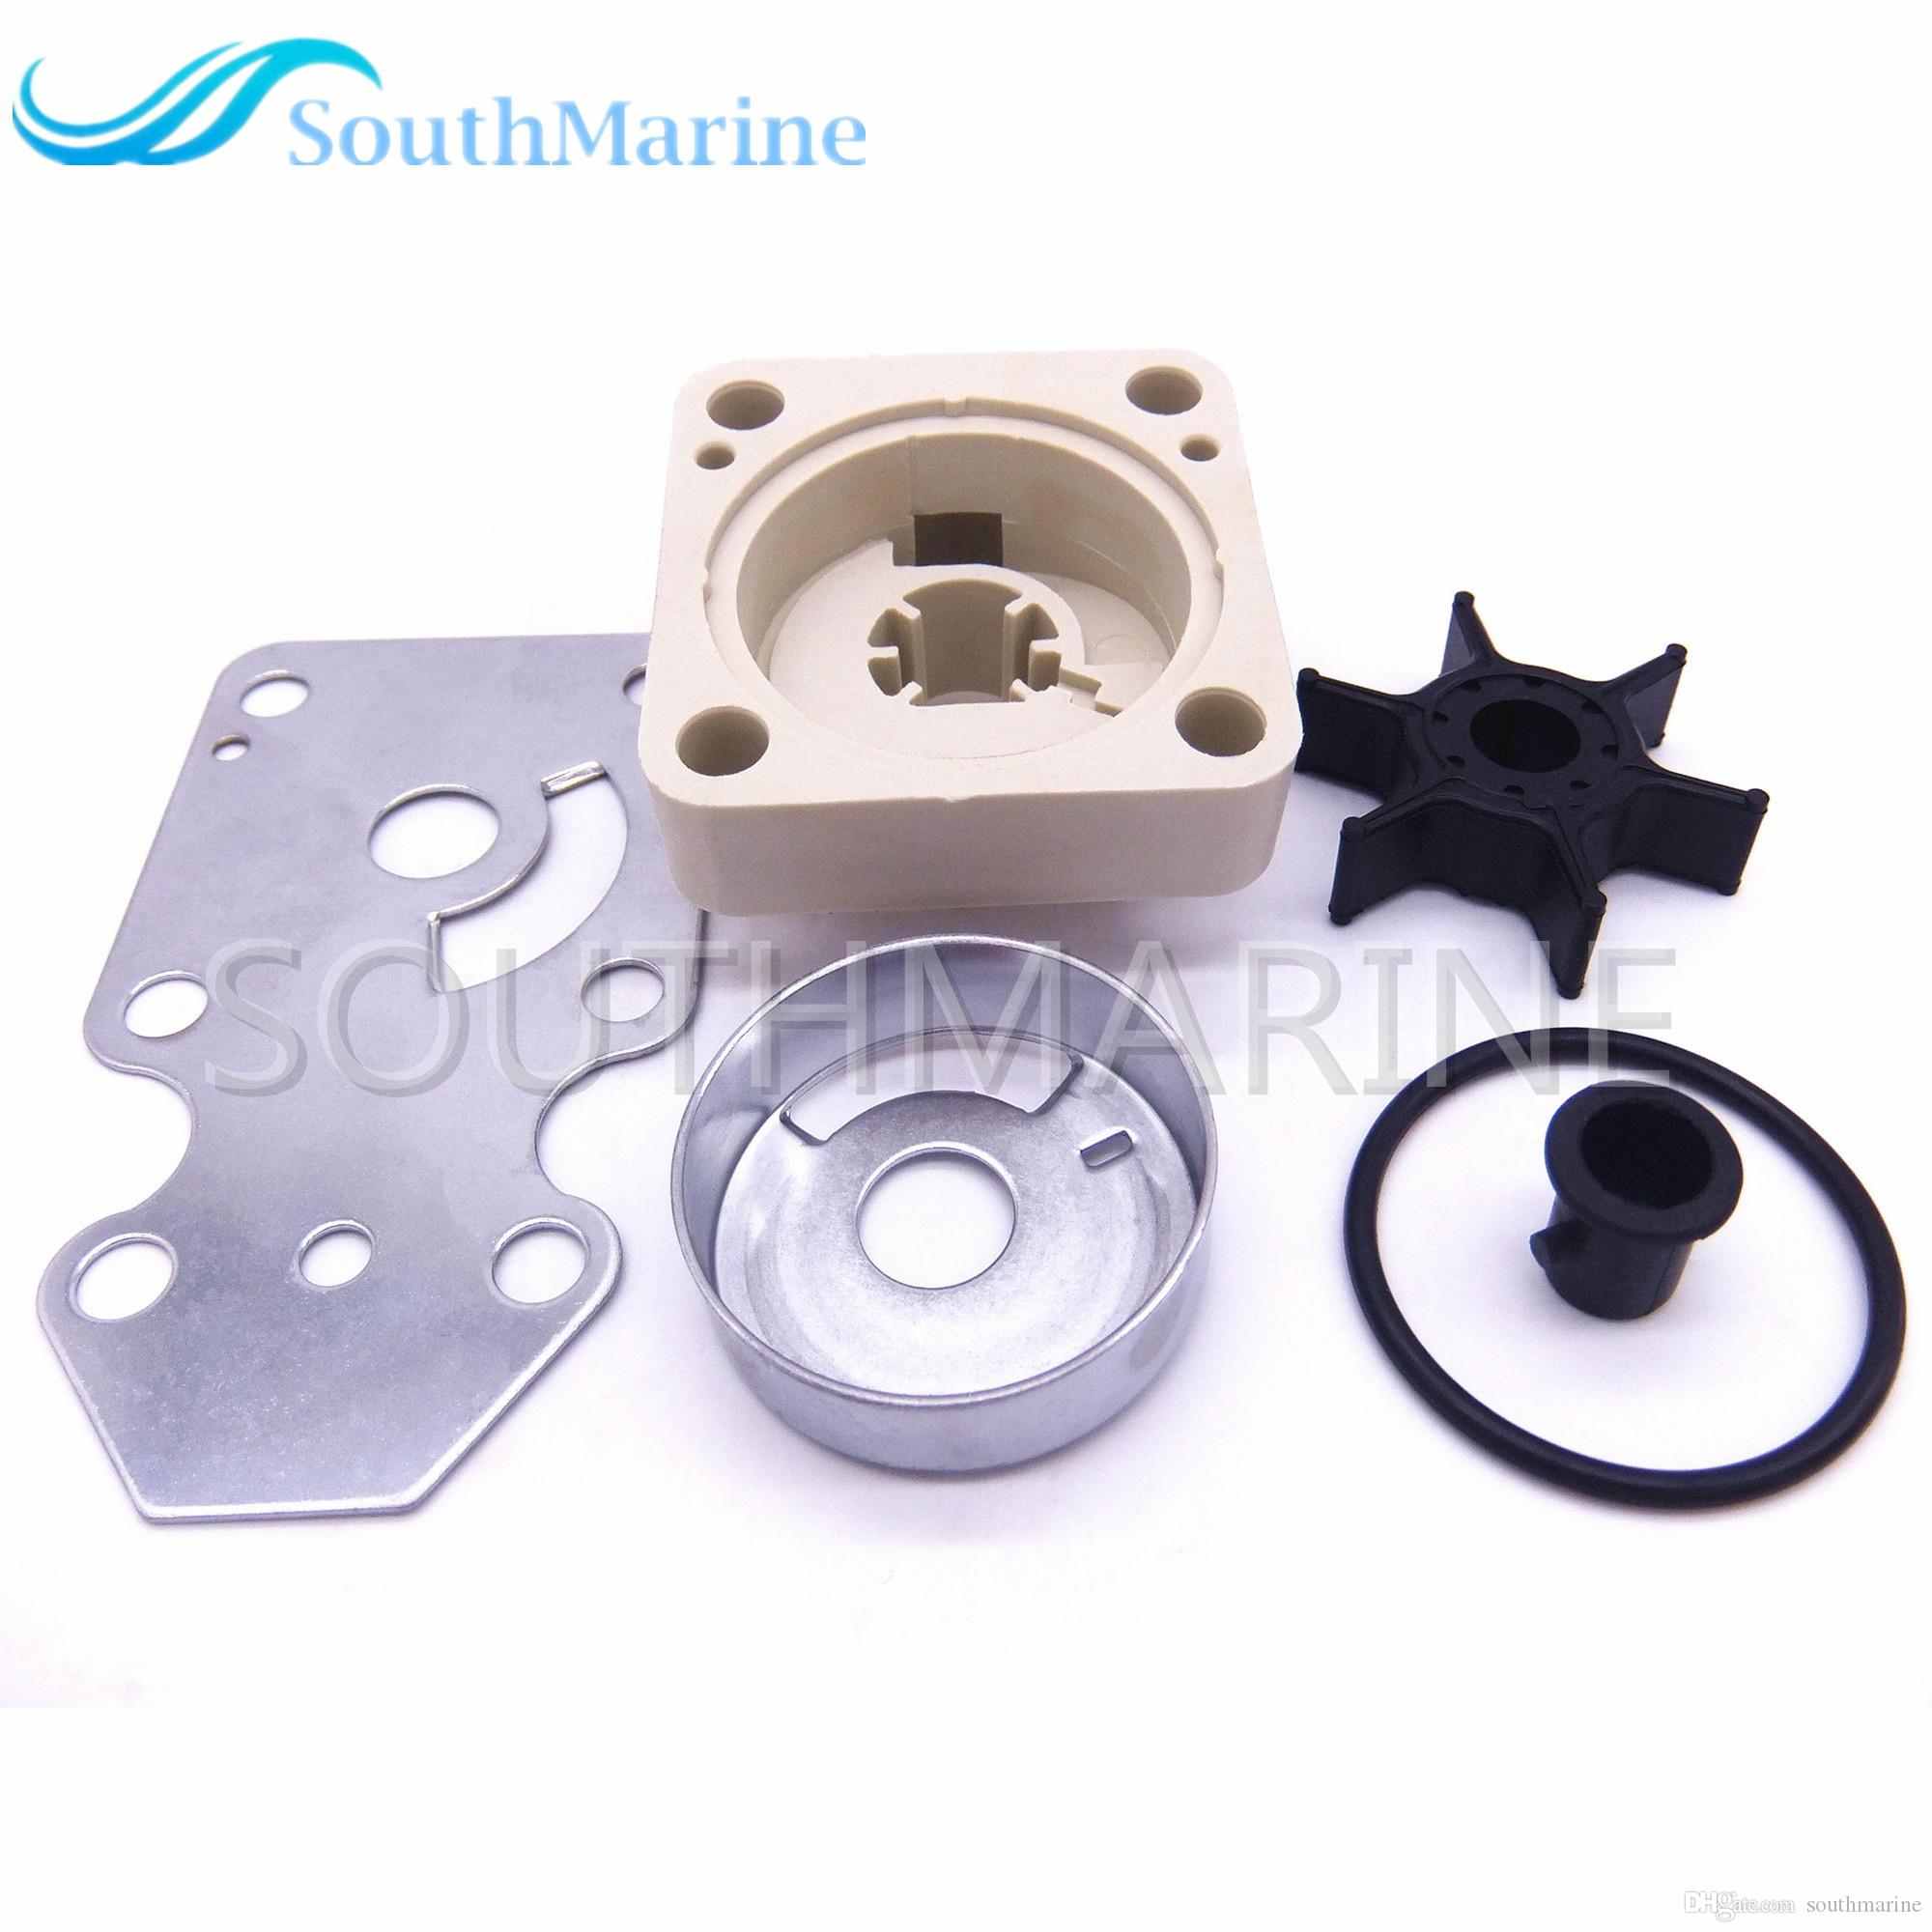 63V-W0078-00 Boat Engine Water Pump Repair Kit for Yamaha / Parsun HDX F15  15hp 4-stroke Outboard Motor 63V-W0078-00 F15 15hp 4-stroke Yamaha Outboard  ...